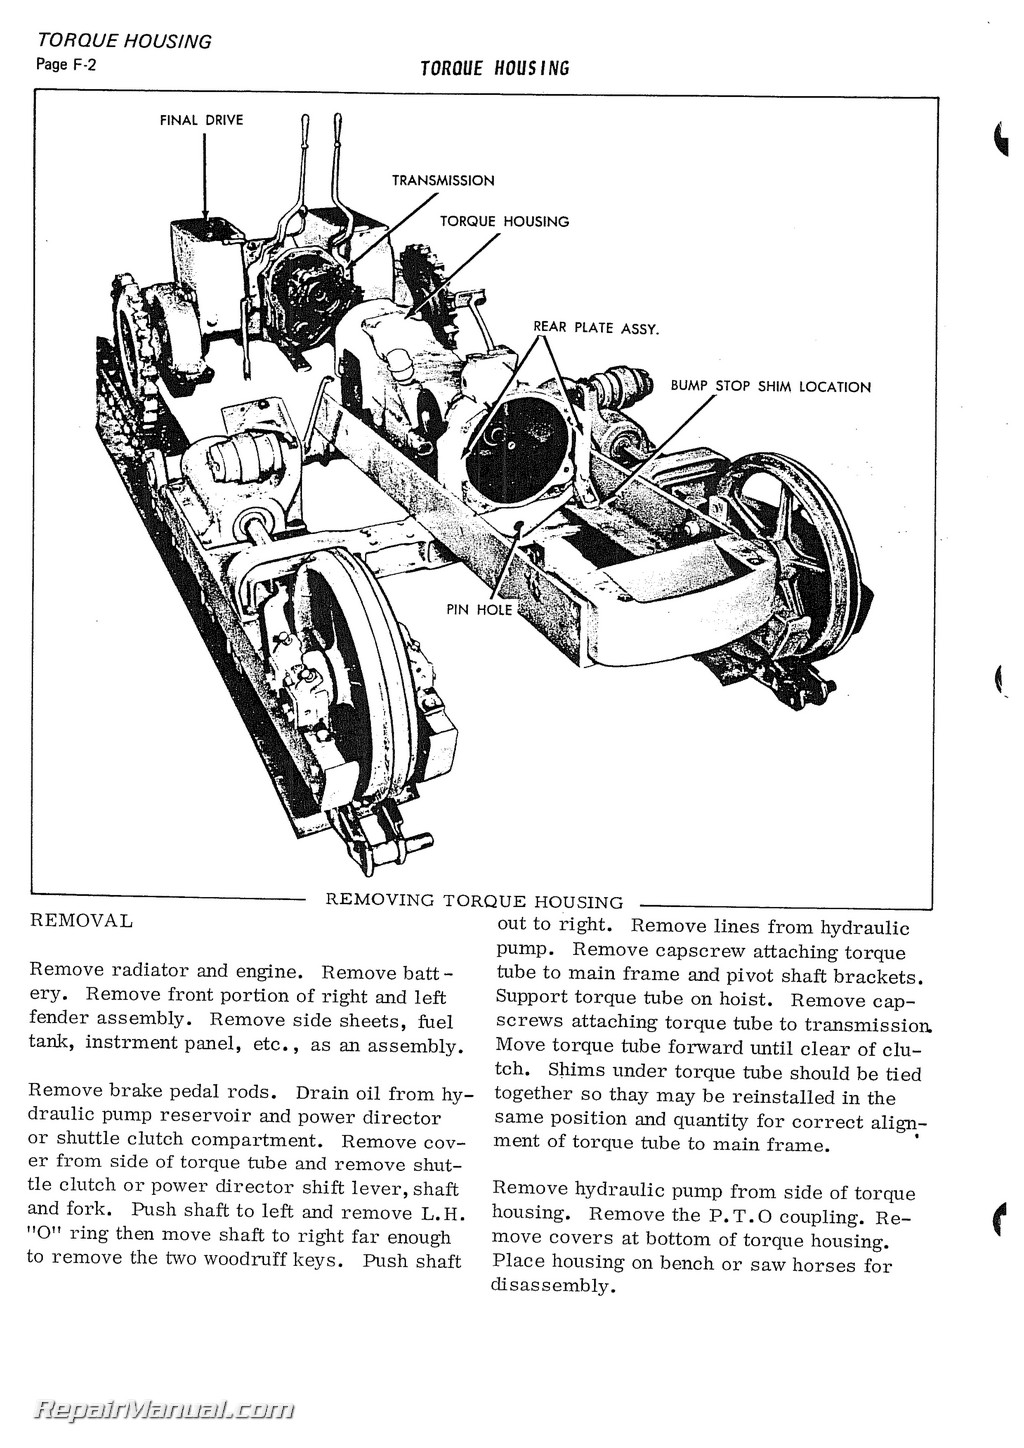 185 allis chalmers injector pump diagram allis chalmers h3 hd3 tractor service manual